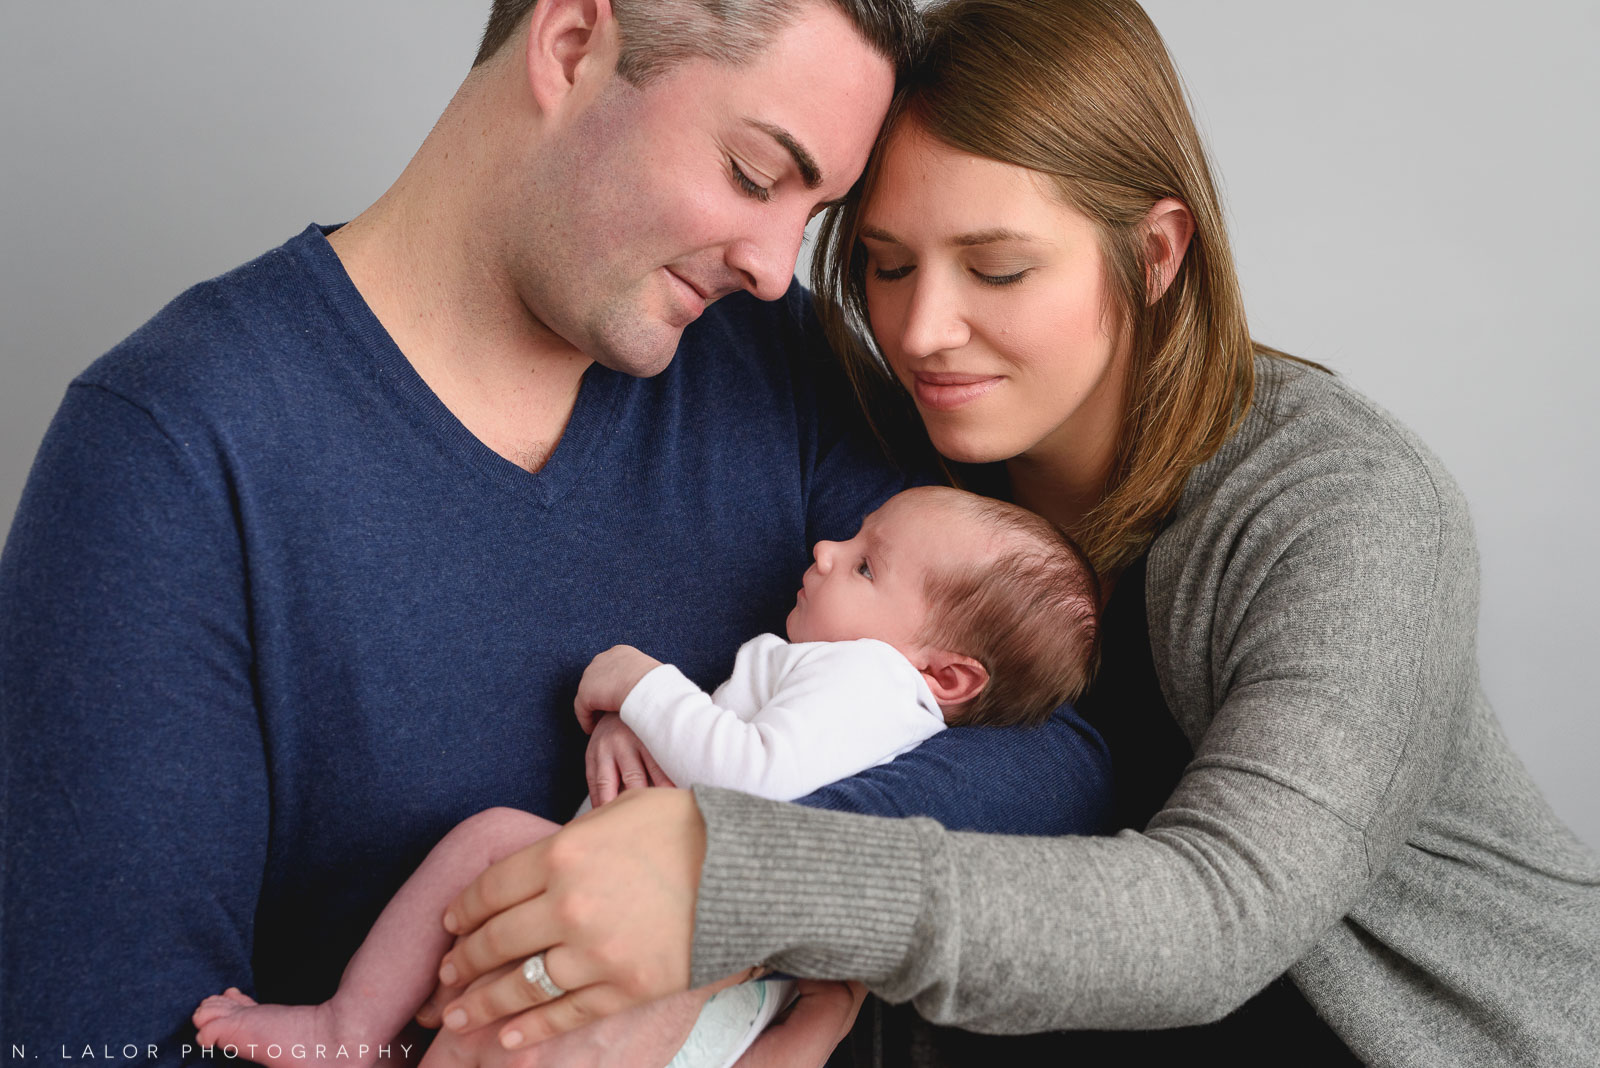 Parents together with their new baby boy. Newborn photo session by N. Lalor Photography. Greenwich, Connecticut.